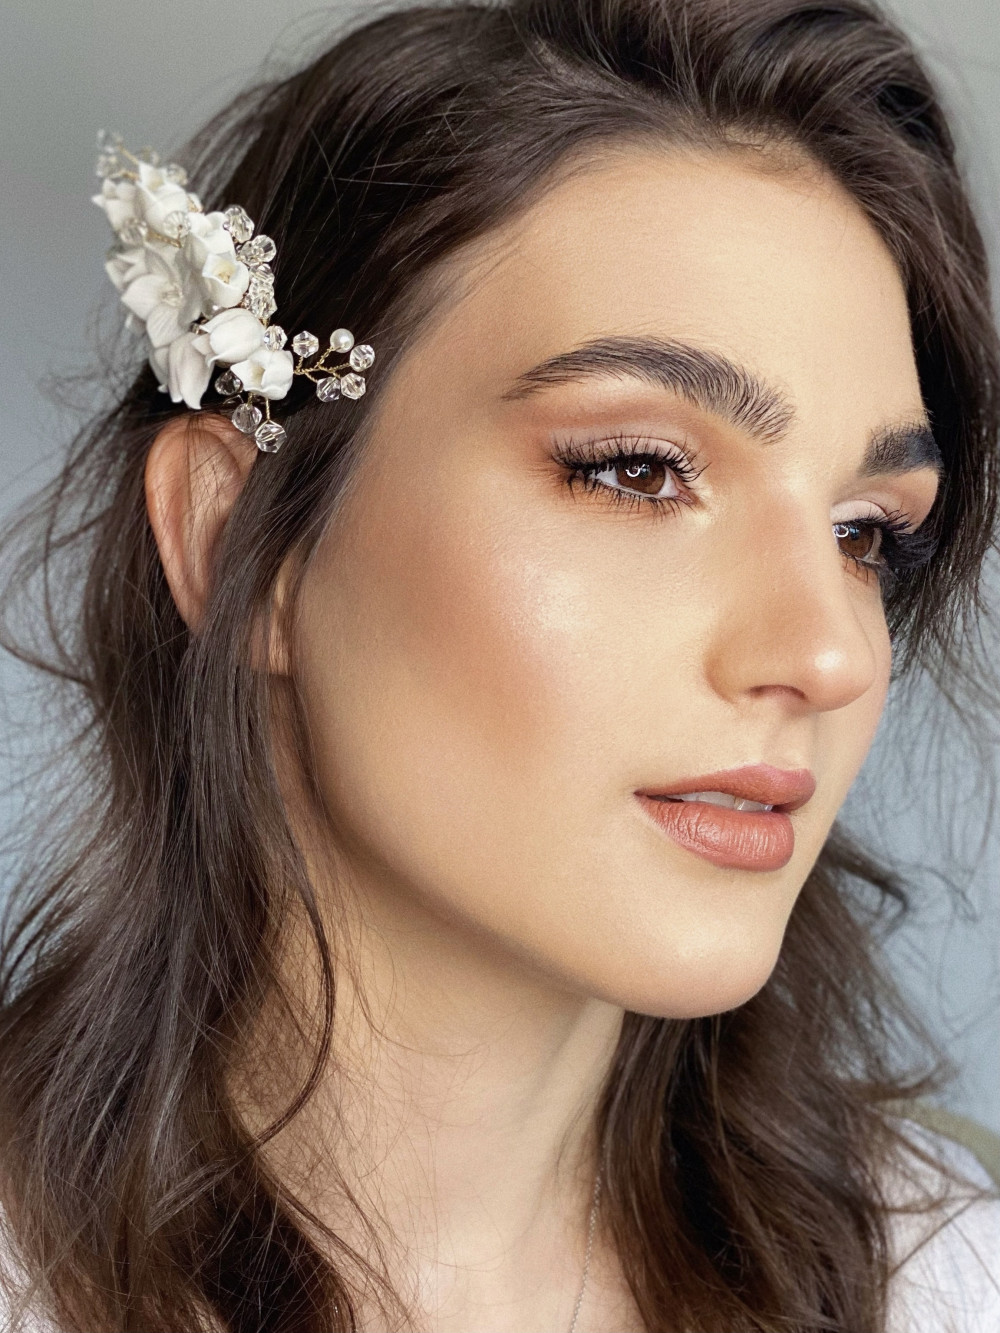 Stylish and elegant bridal makeup with a little touch of graphics to open up your eyes and make your entire look special - Make Me Bridal Artist: Alisa. #classic #glamorous #boho #naturalmakeup #weddingmorning #airbrushedmakeup #soft #bridalmakeup #glow #elegant #perfectmakeup